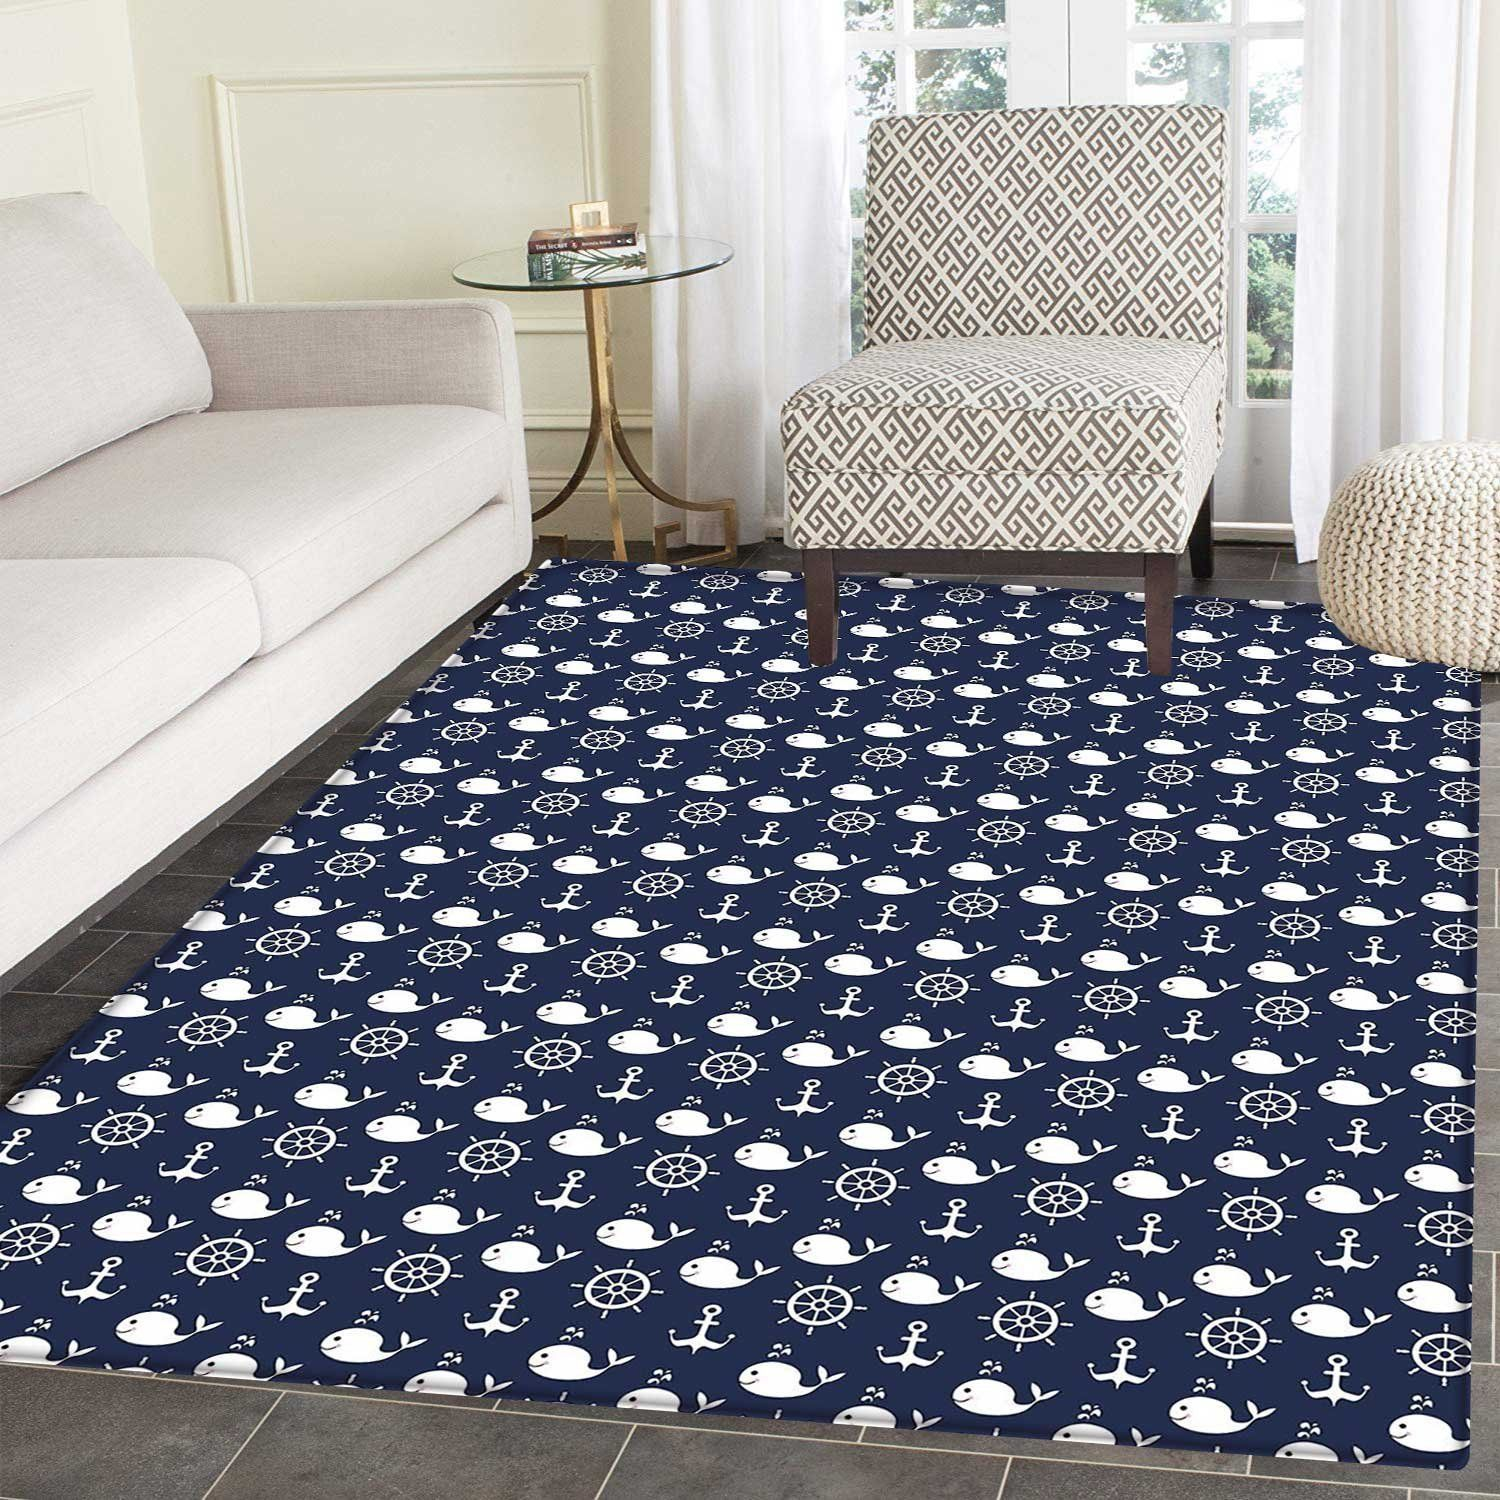 75 Whale Rugs And Whale Area Rugs 2020 Nautical Area Rugs